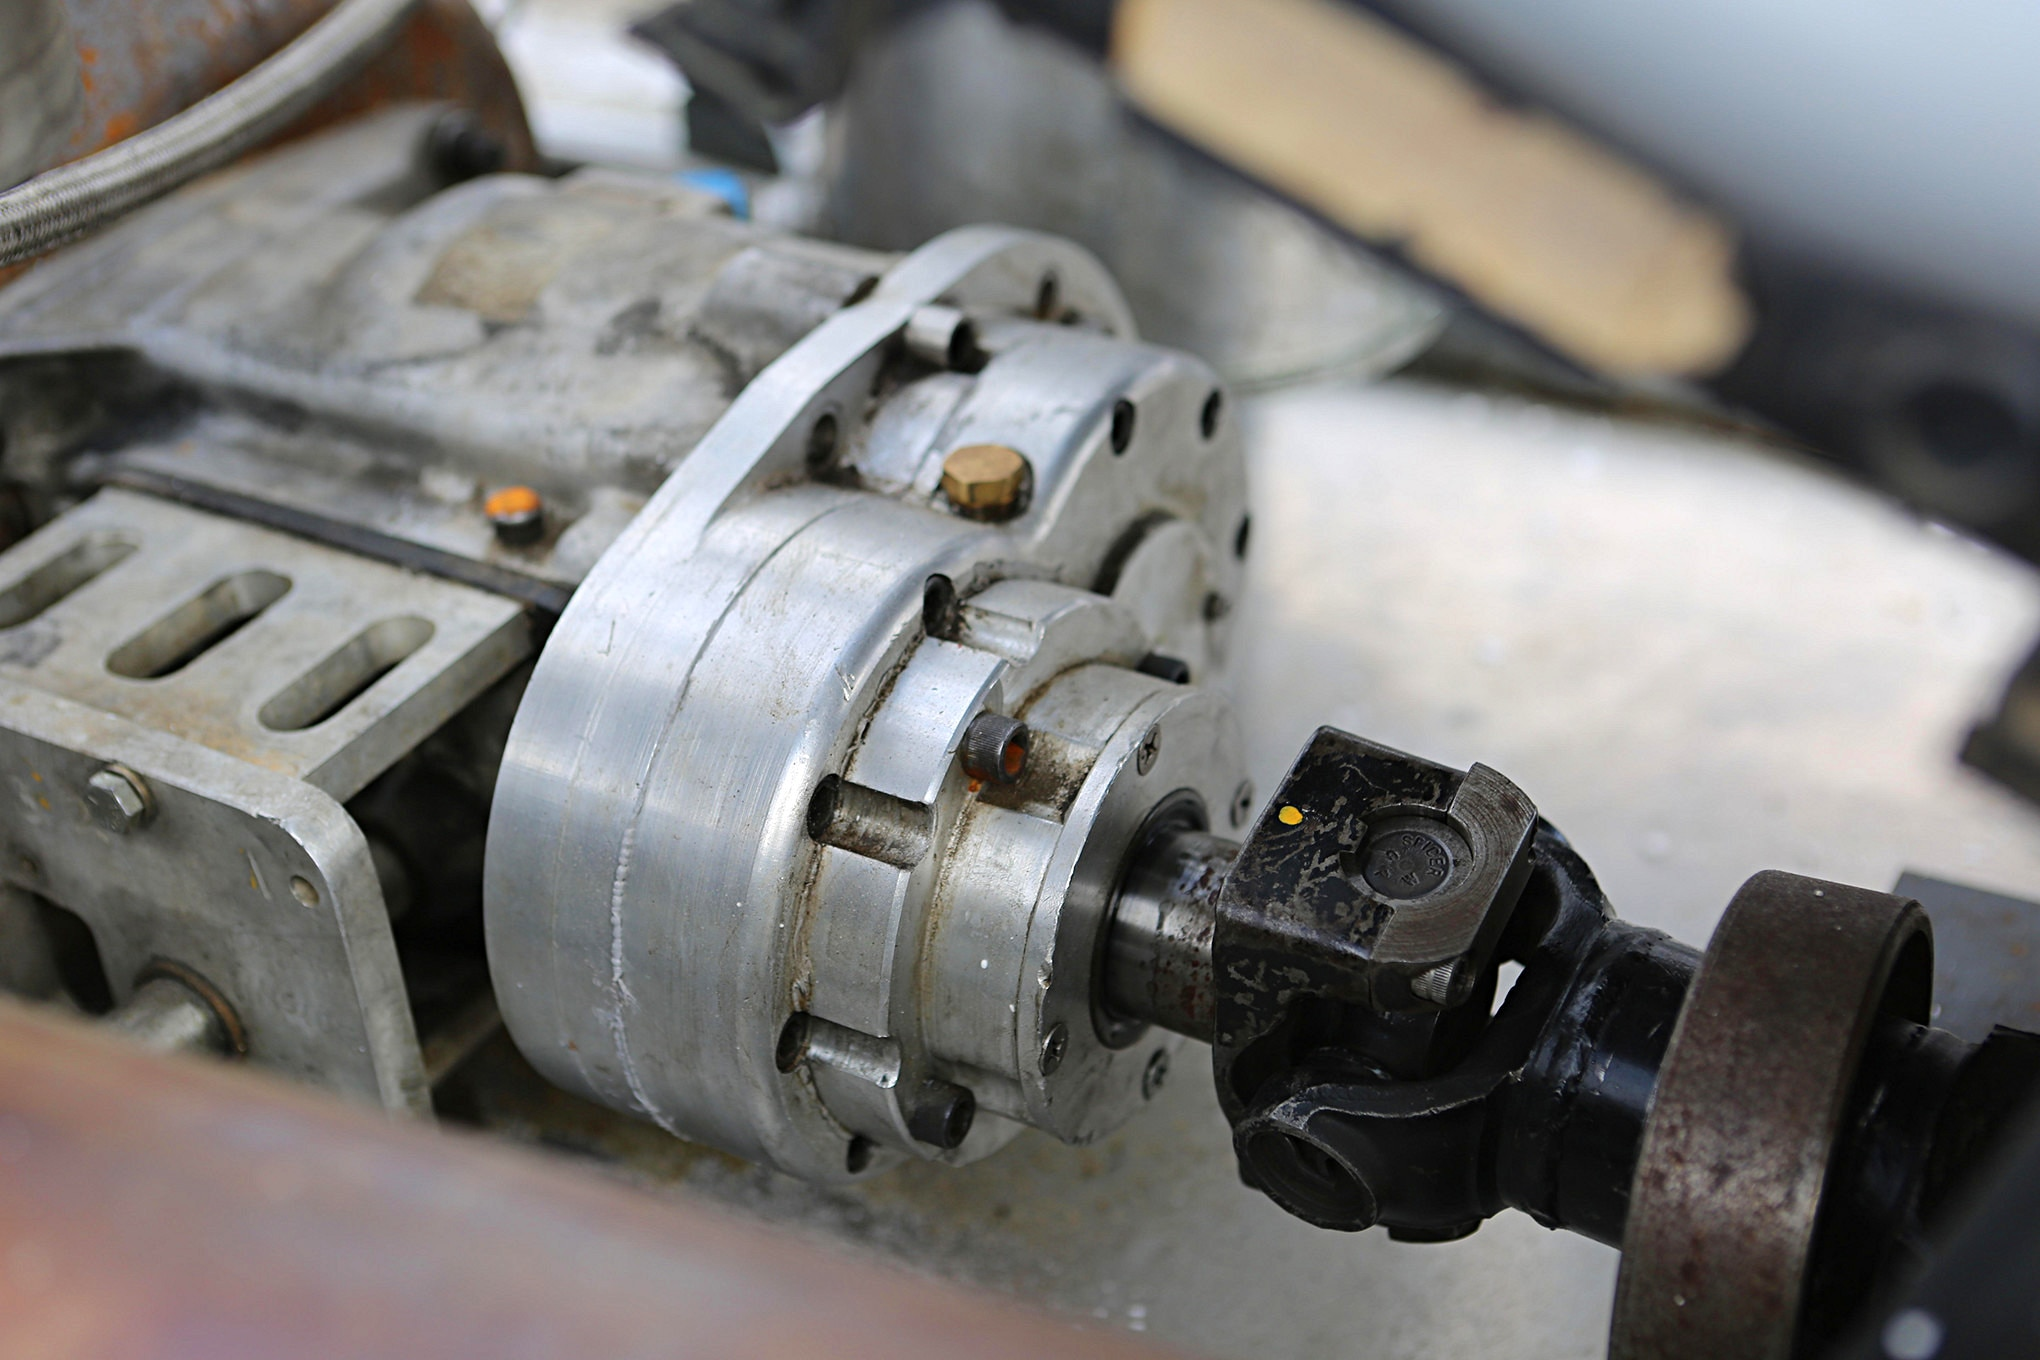 This homemade aluminum housing supports 2 gears – a quick way to fine-tune the car's gear ratios.